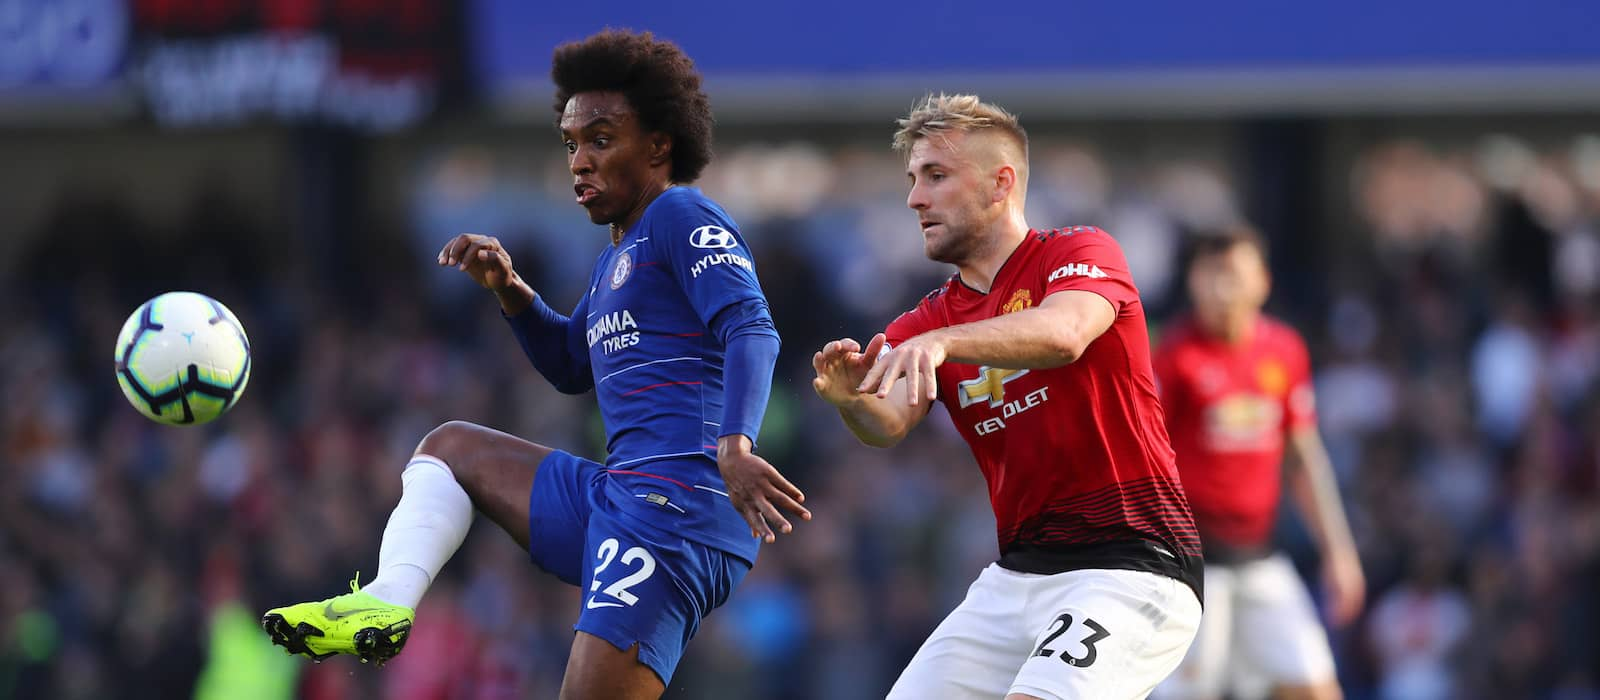 Luke Shaw destroys Paul Pogba on Twitter after 2-1 win over Everton